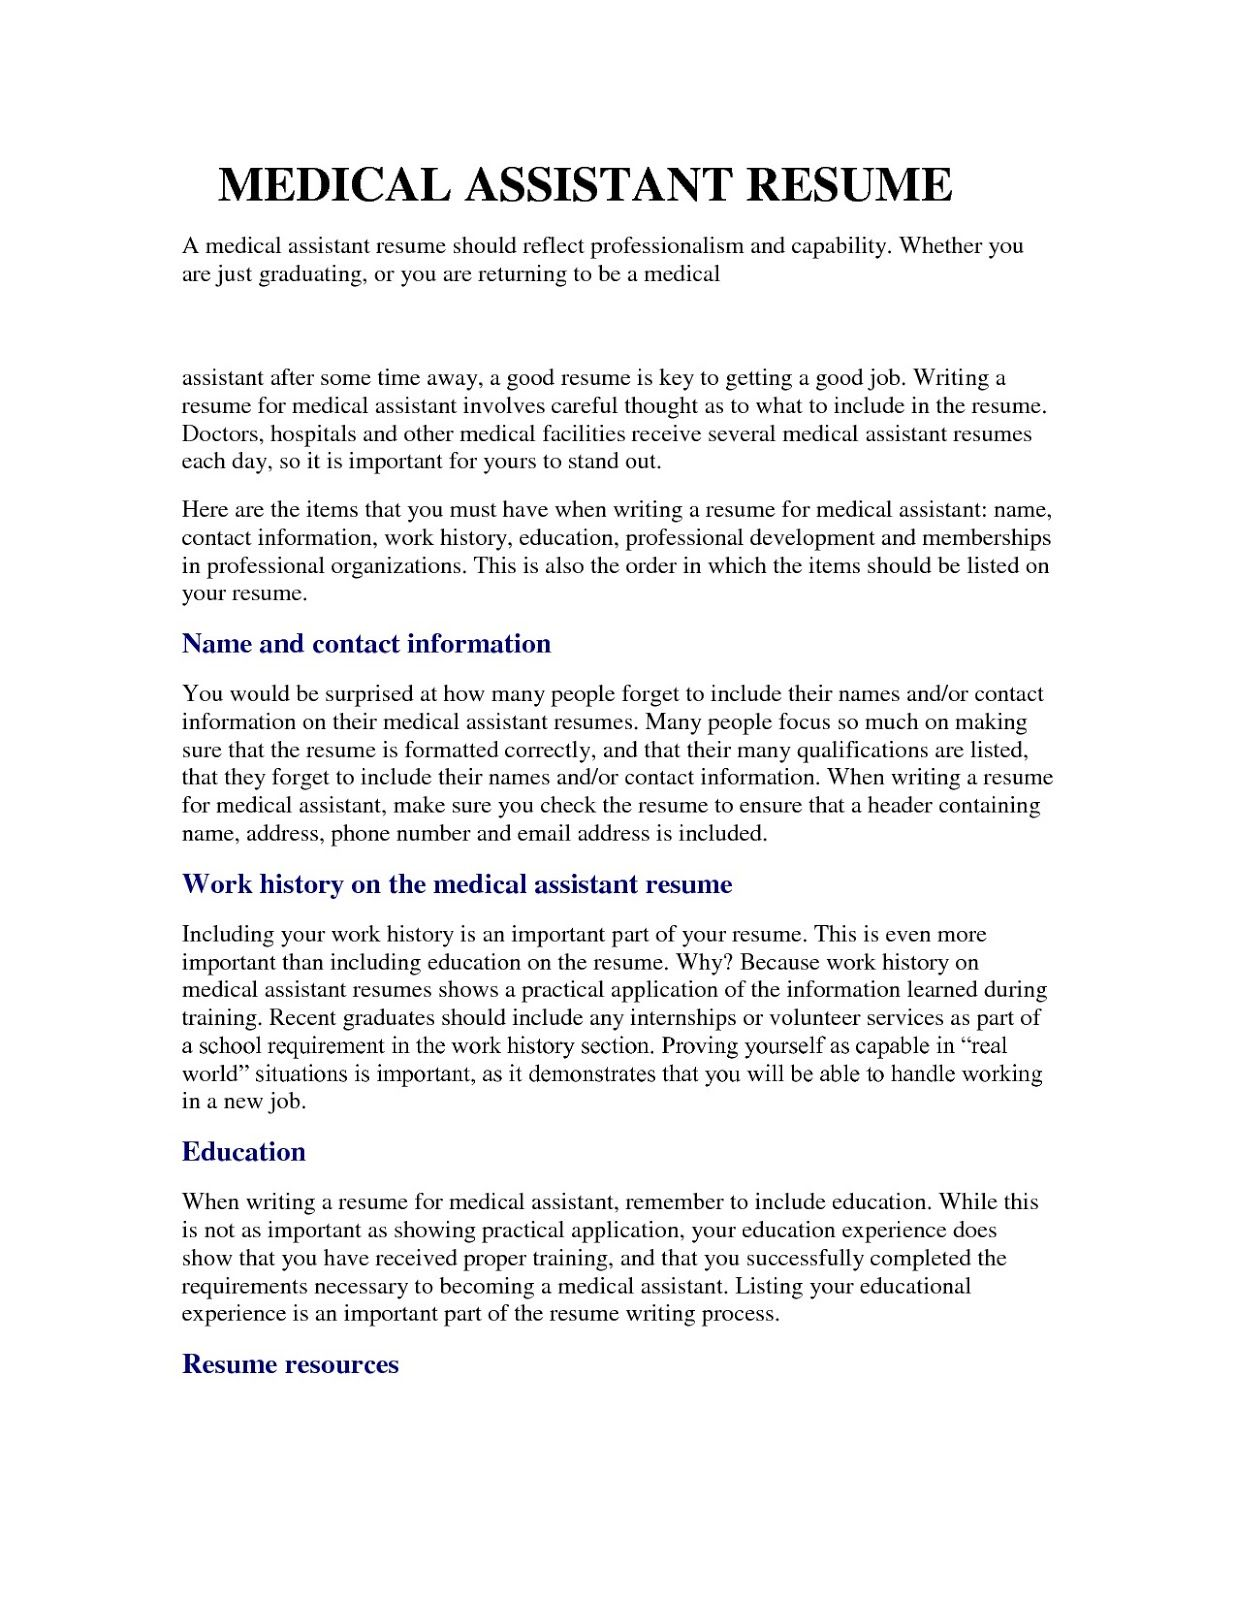 Medical Assistant Resume Examples Medical Assistant